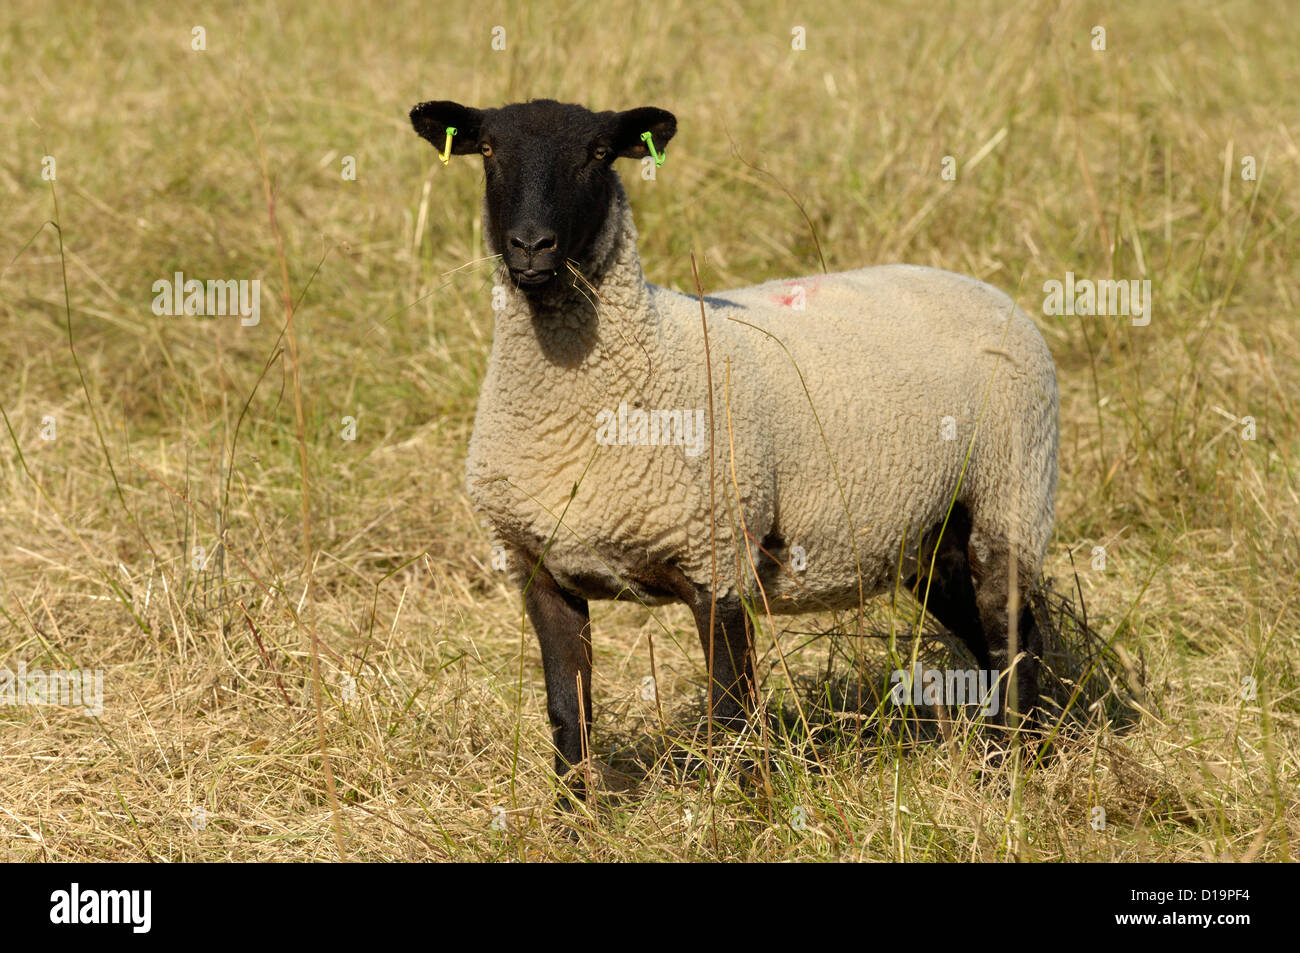 Shearling Suffolk ewe eating grass and looking startled in long grass - Stock Image